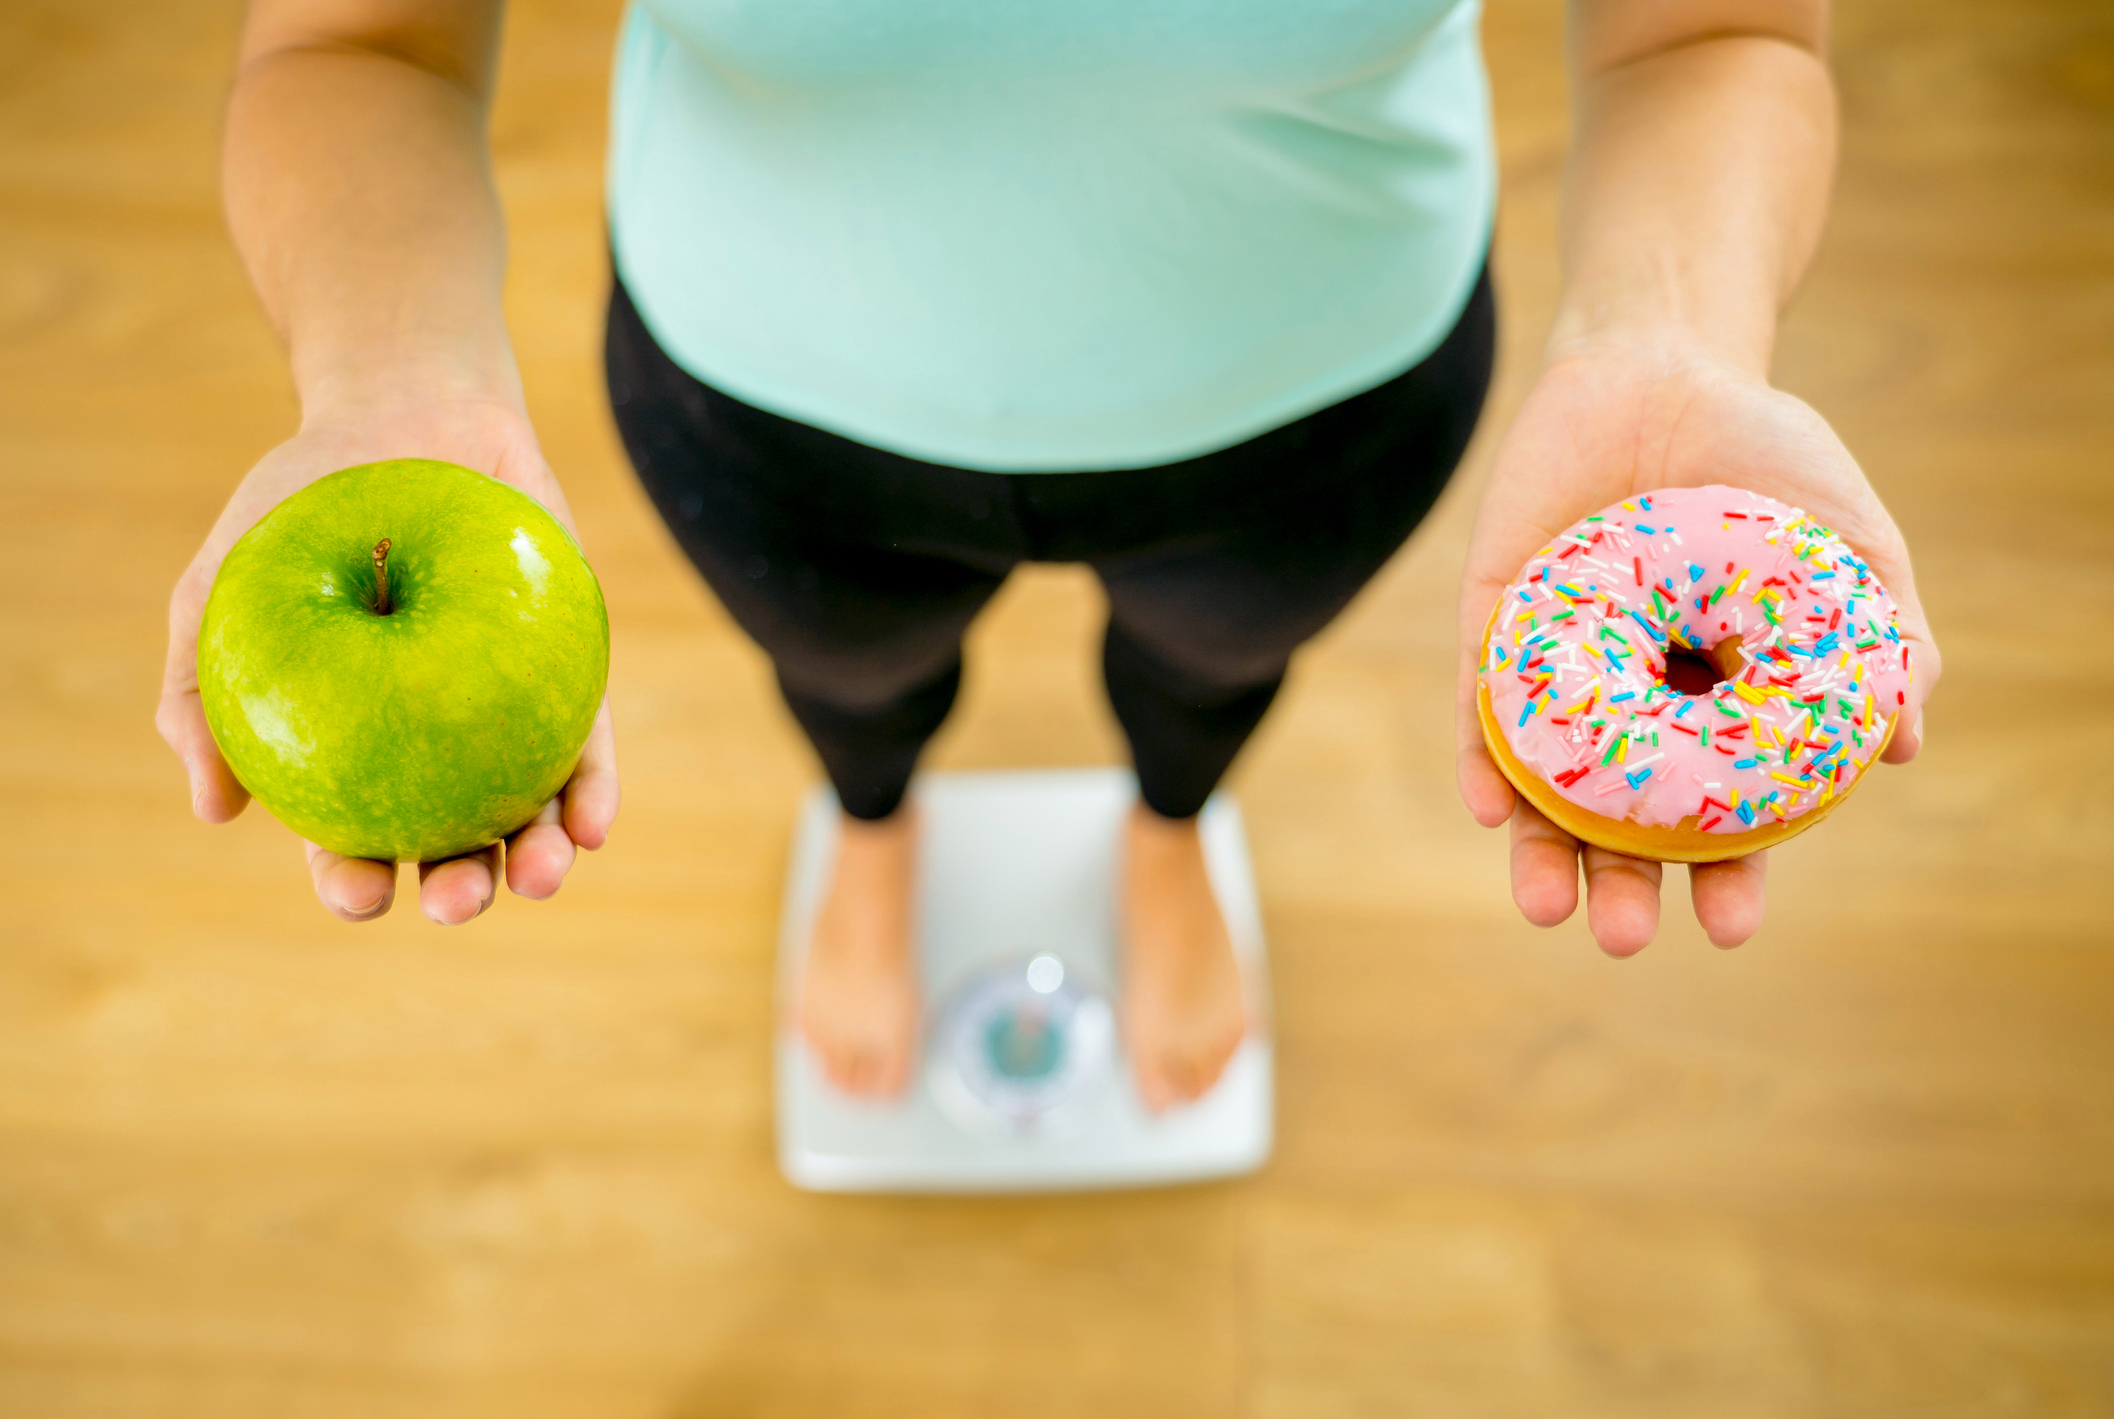 Scientists have discovered that eating an apple a day can reduce the risk of type 2 diabetes by a quarter